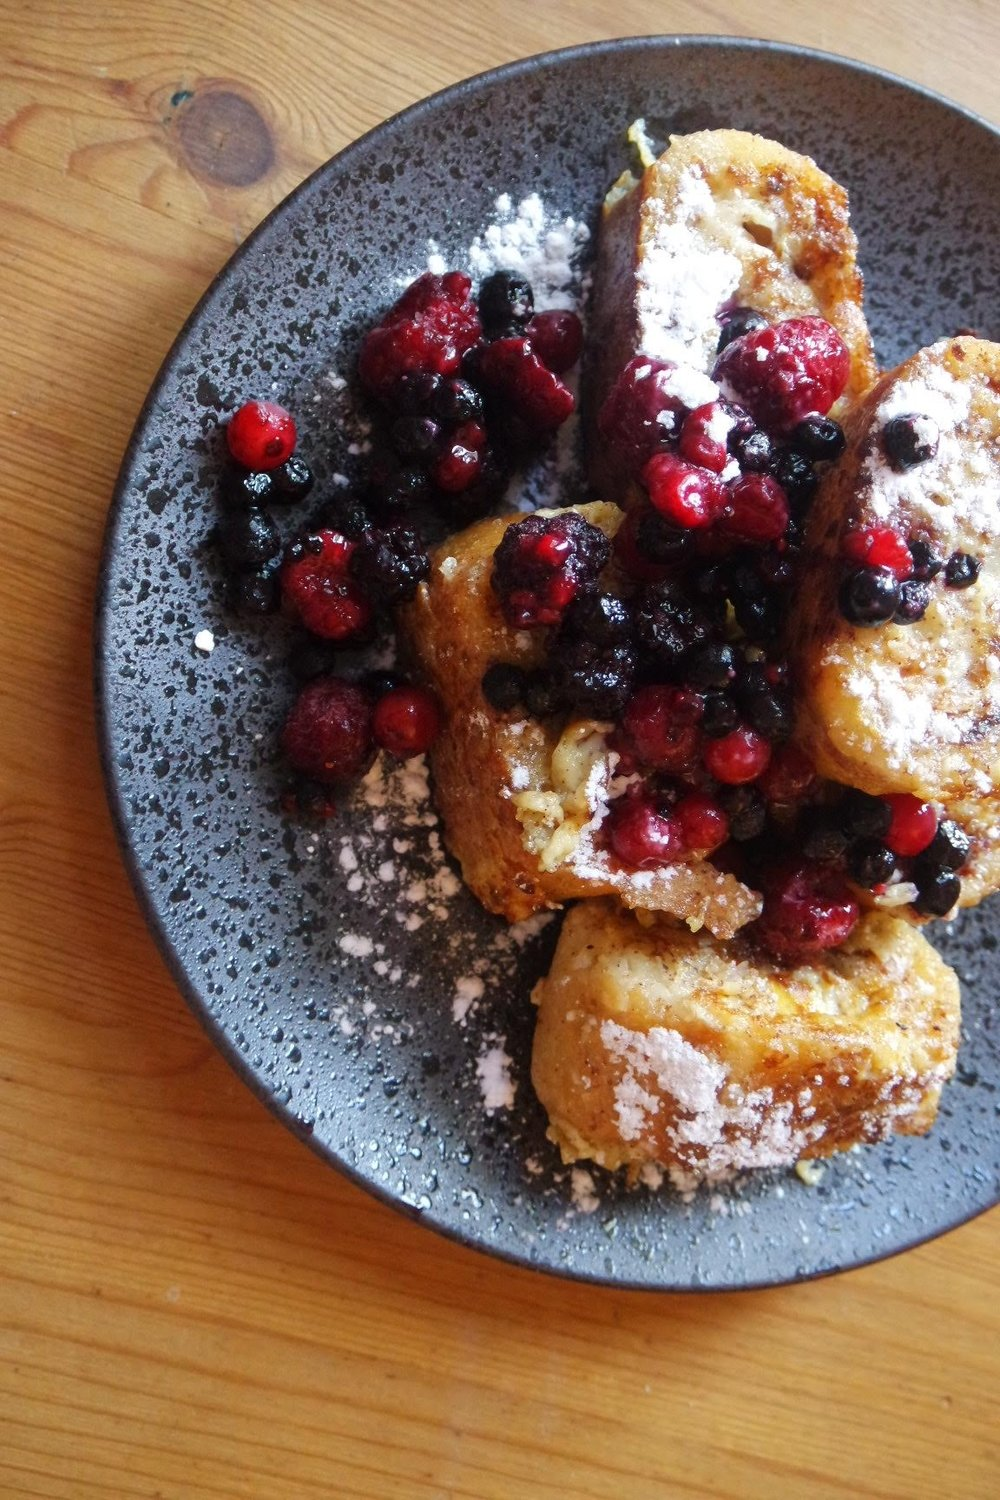 French toast, known in France as pain perdu (literally 'lost bread') topped with warm berries.